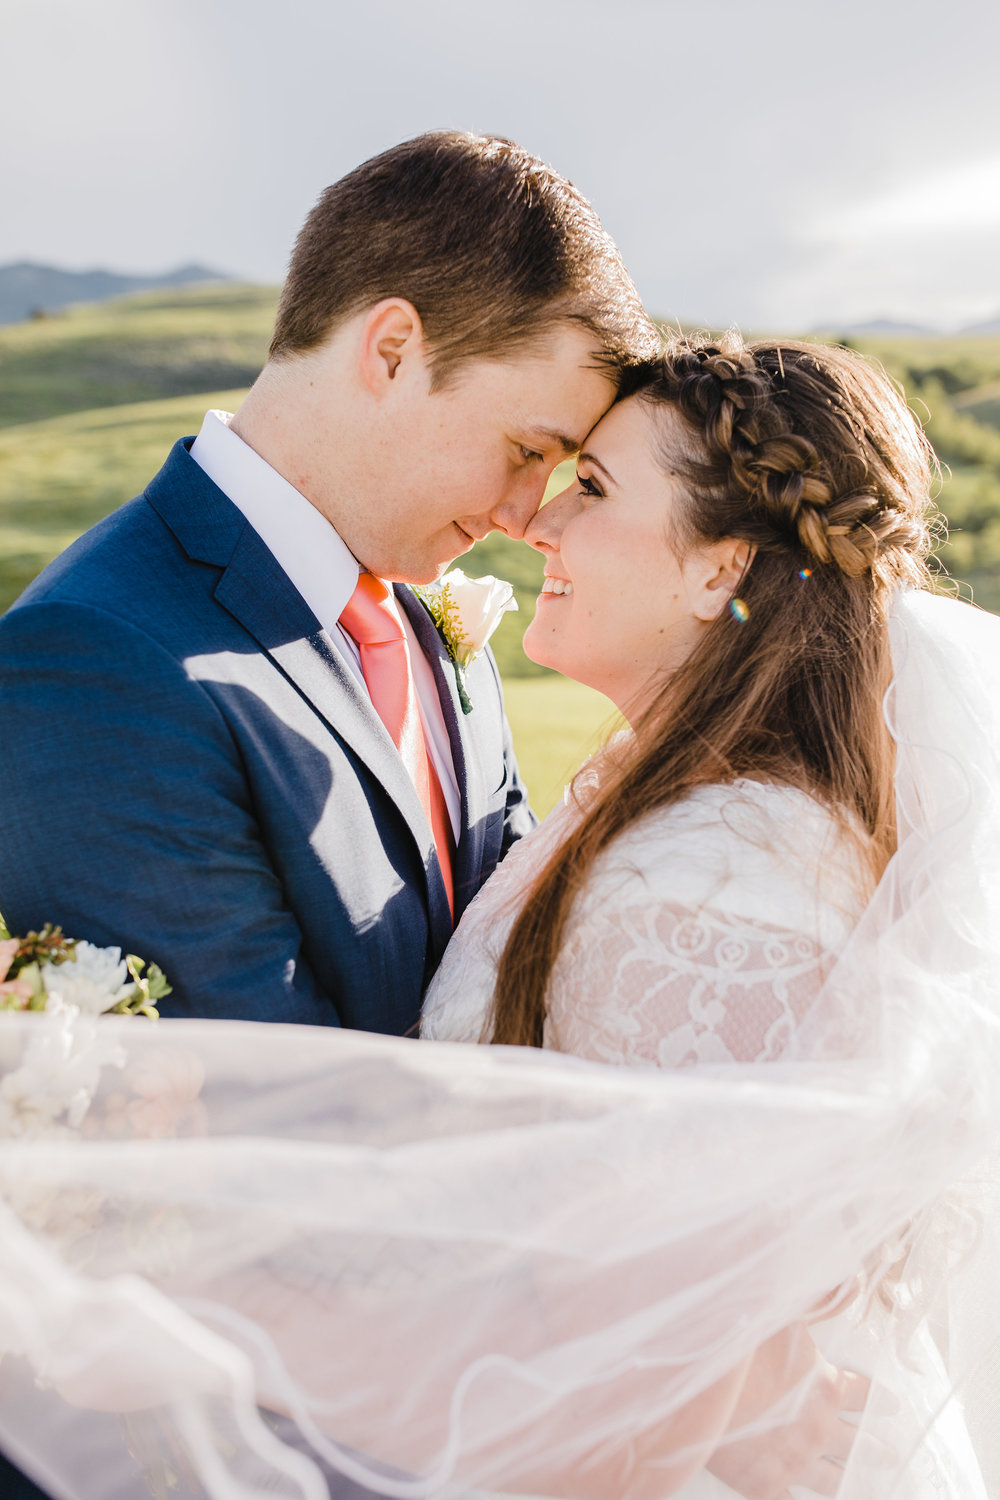 wedding photographer in westminister colorado bridal veil wedding braids outdoor bridals